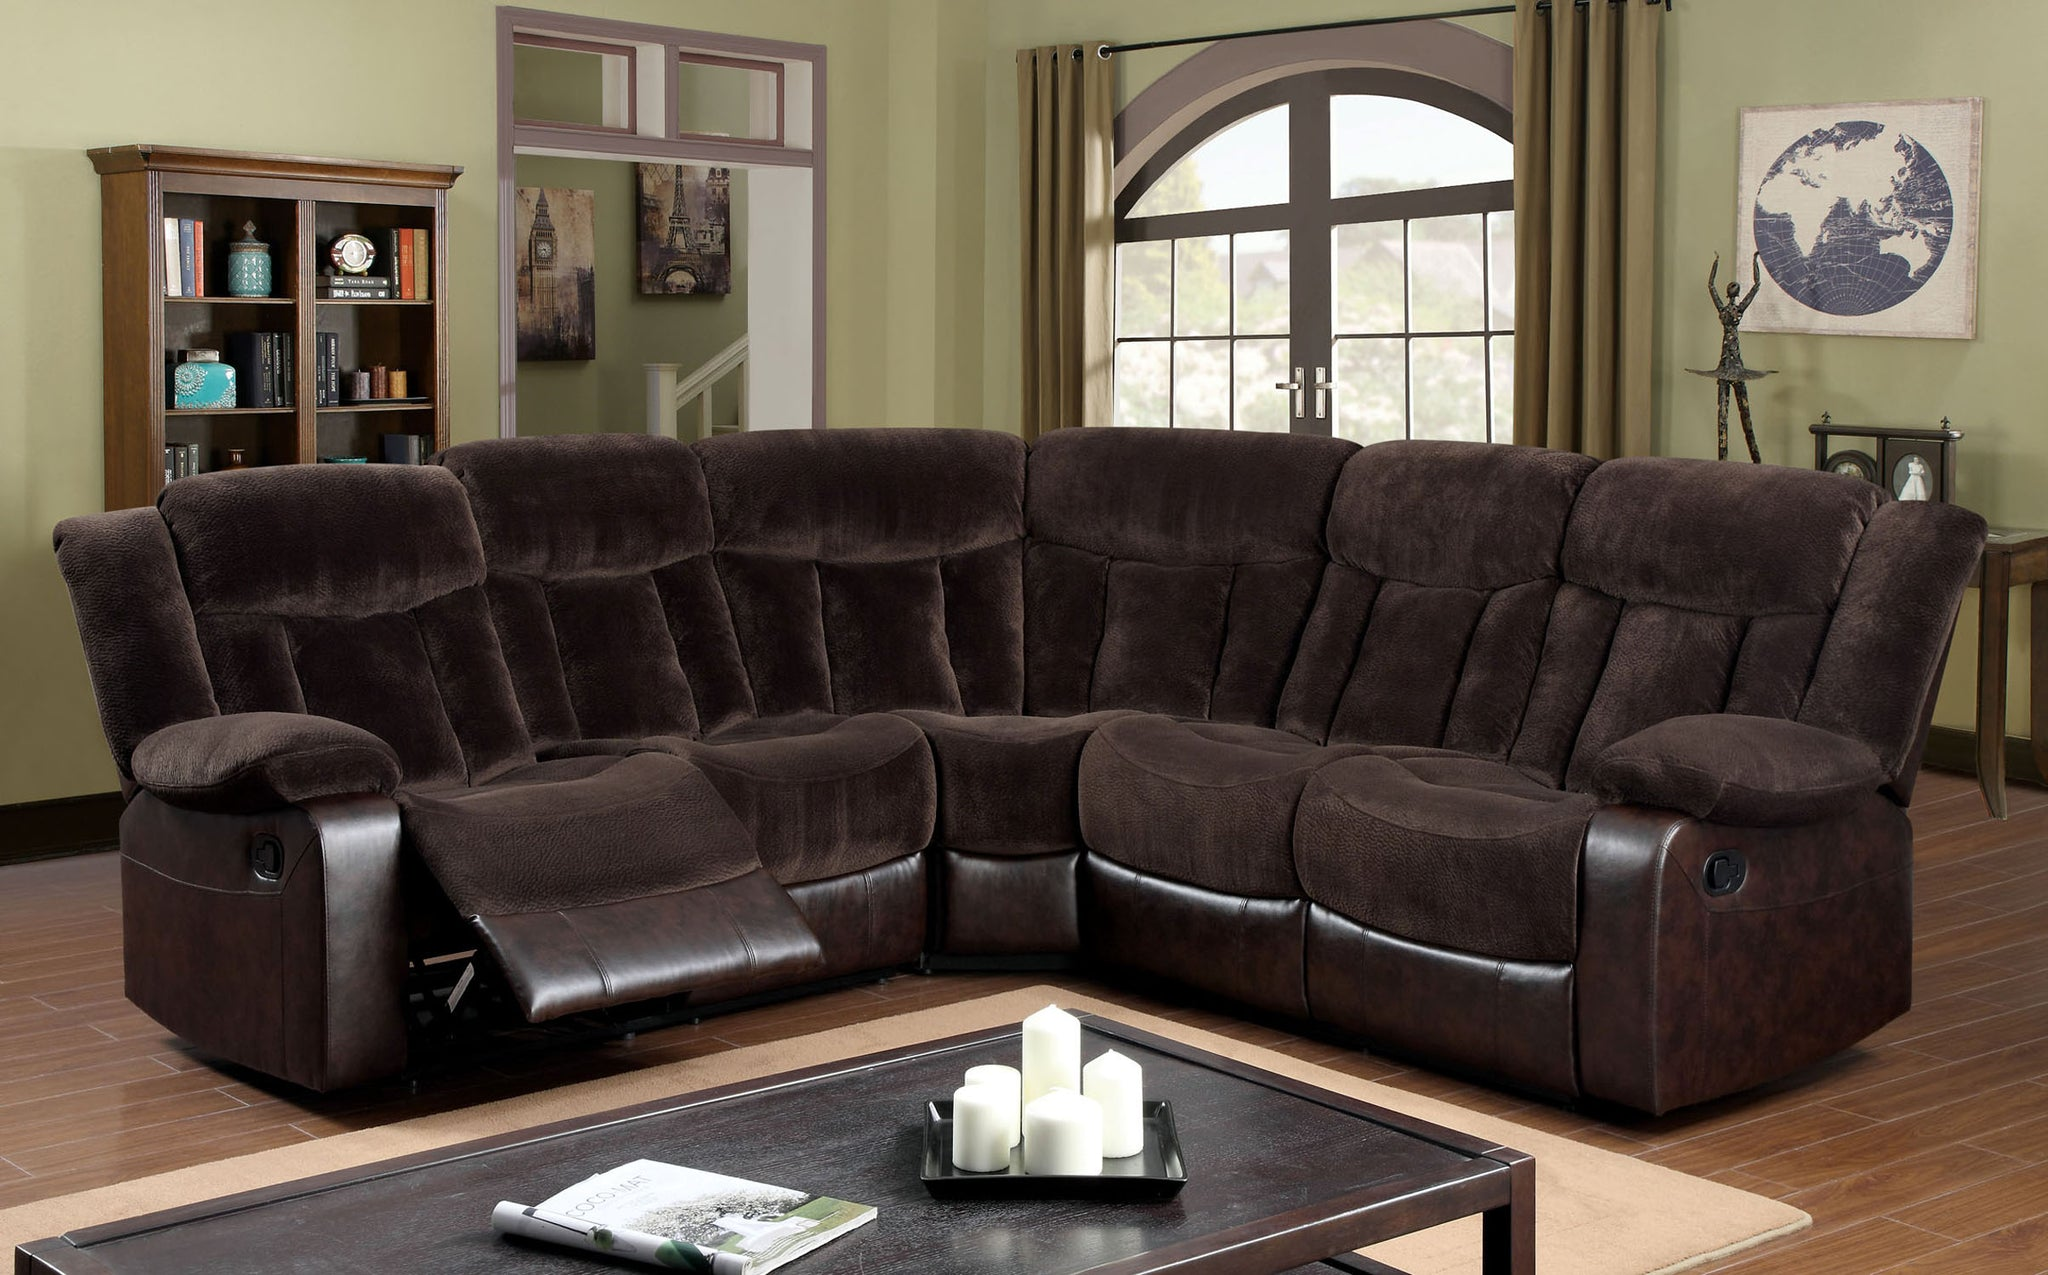 Xolo Transitional Plush Champion Fabric Recliner Sectional, Brown